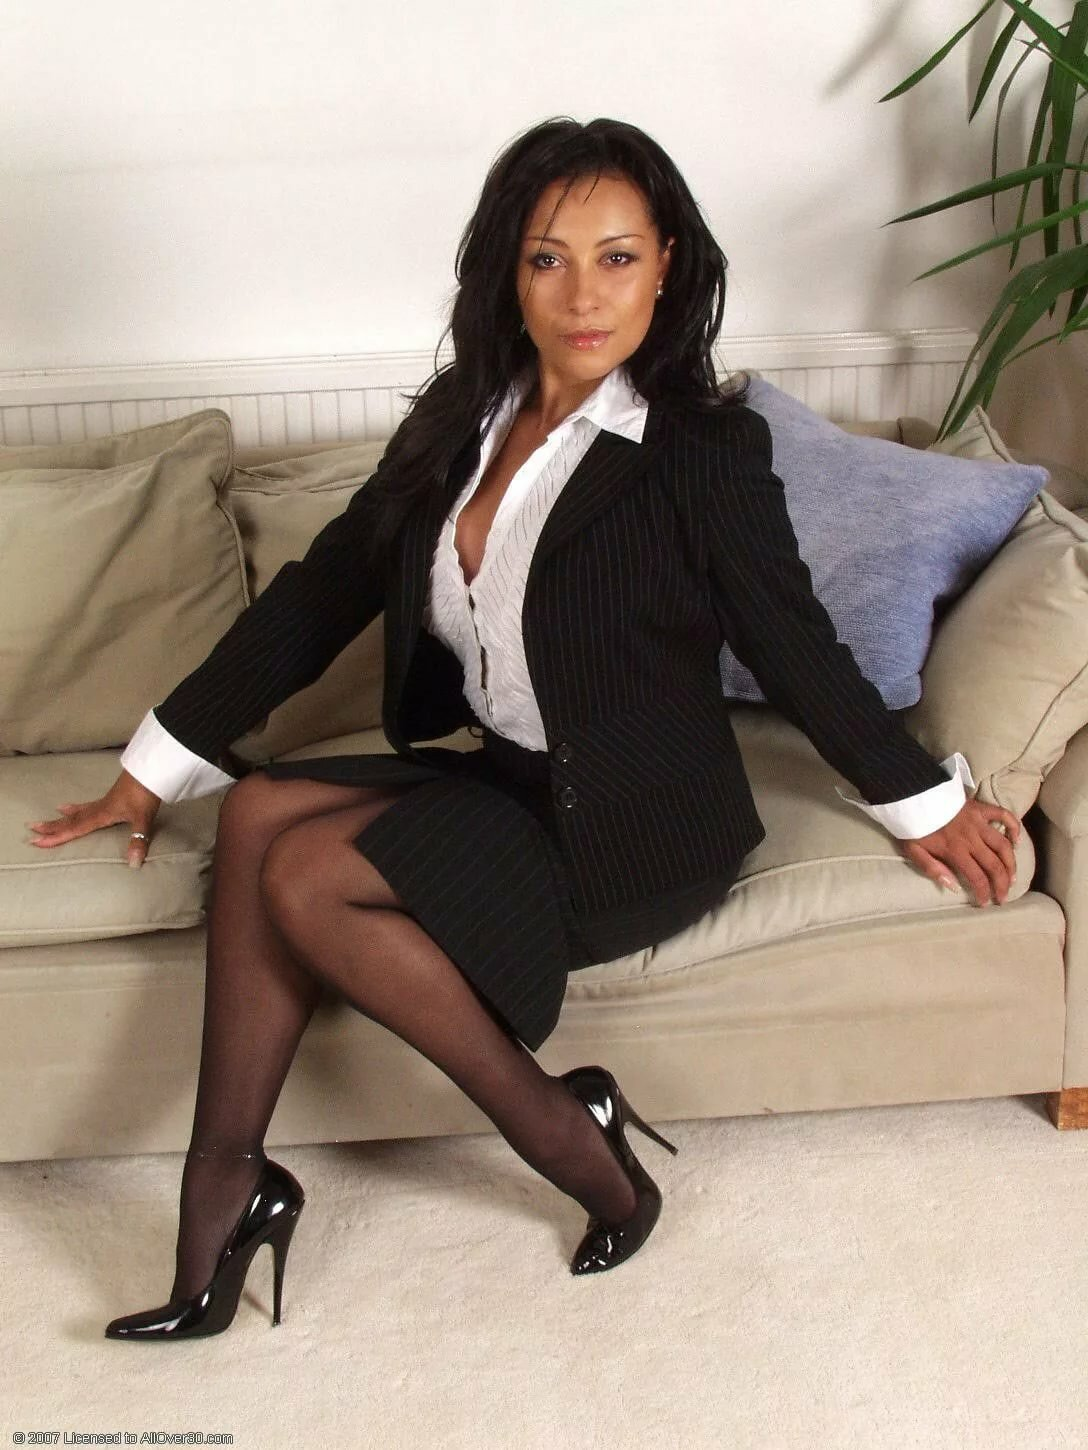 business-suit-pantyhose-fuking-hotest-women